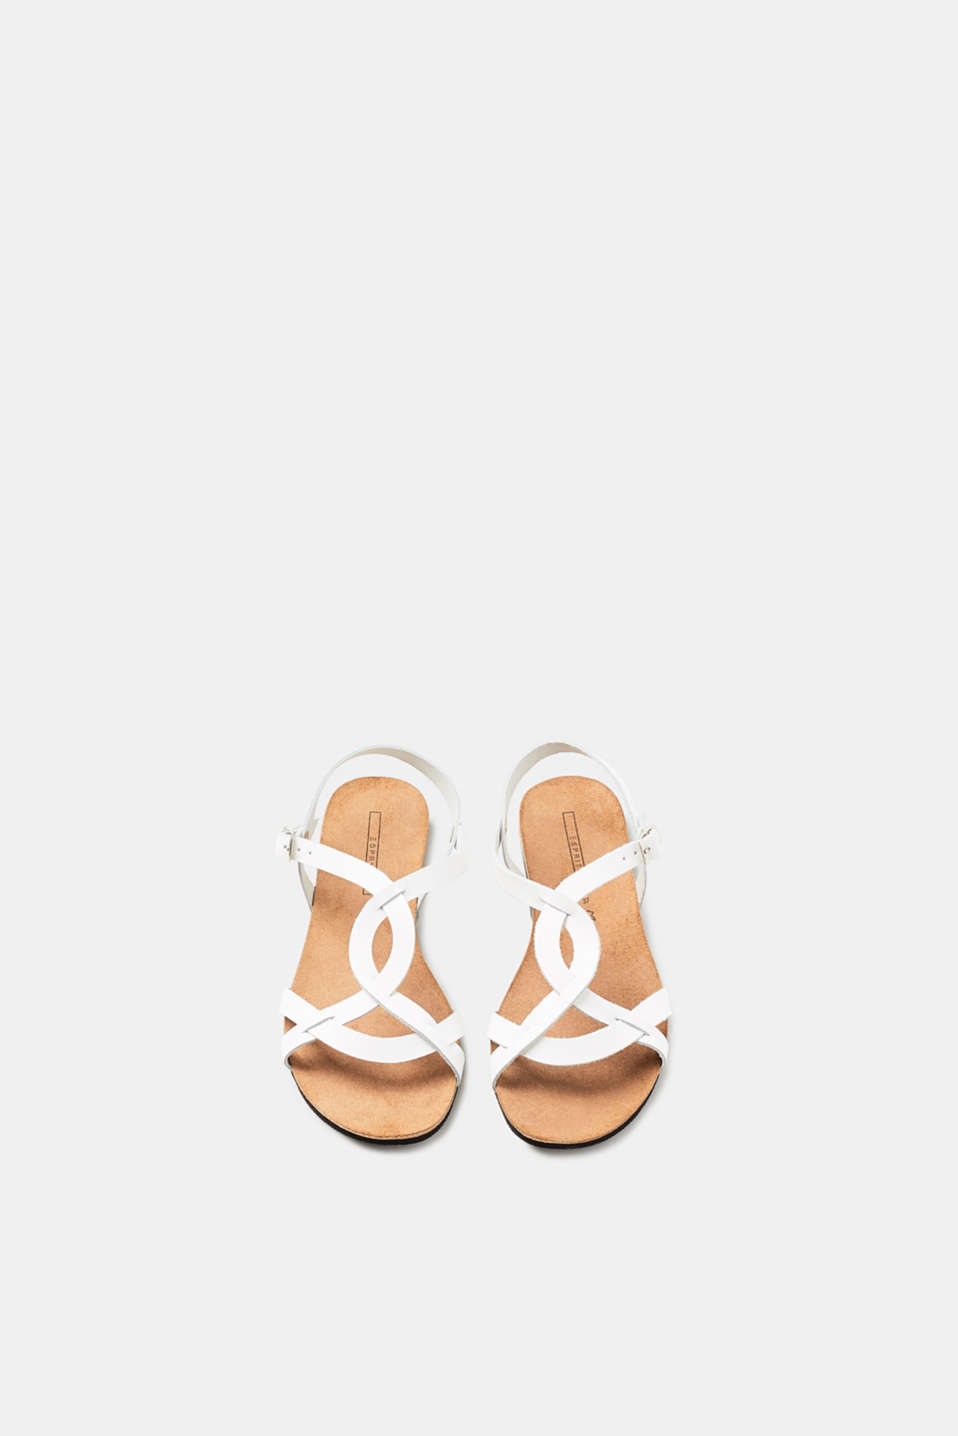 Flat sandals with leather straps and a leather sole